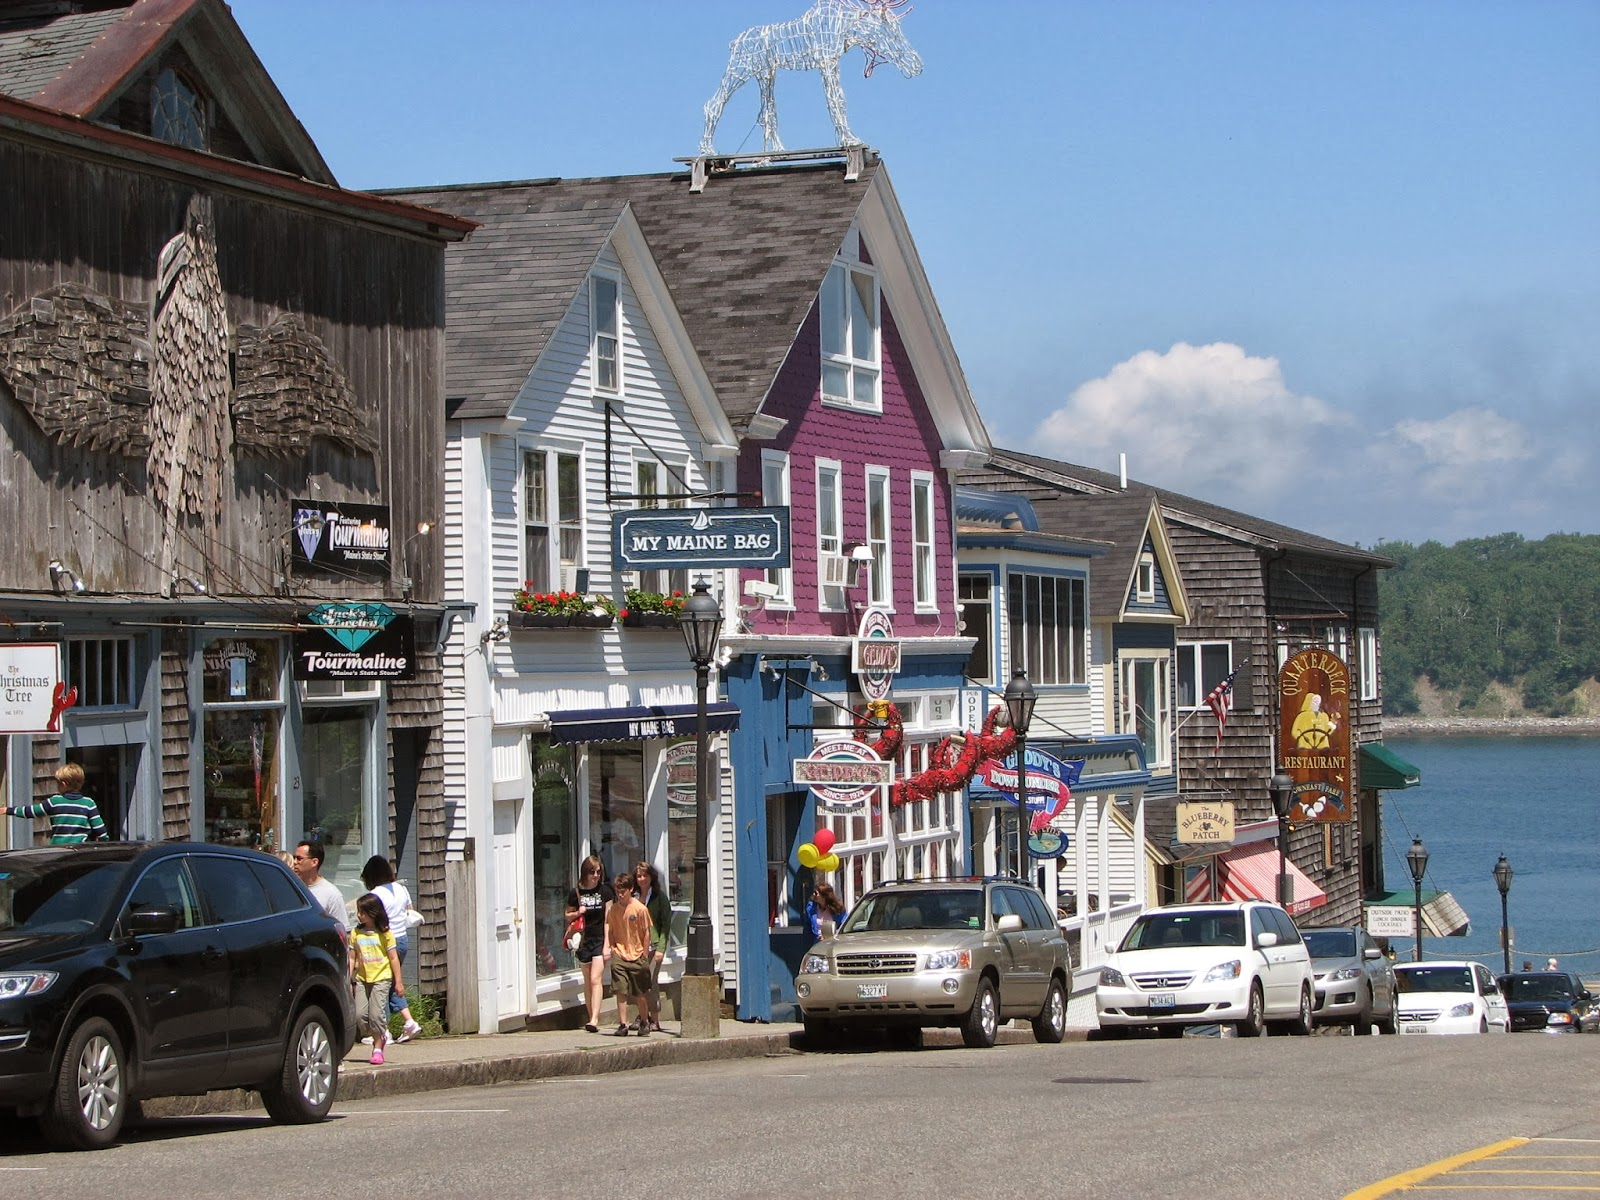 Towns Near Me Review This Bar Harbor Mount Desert Island Maine